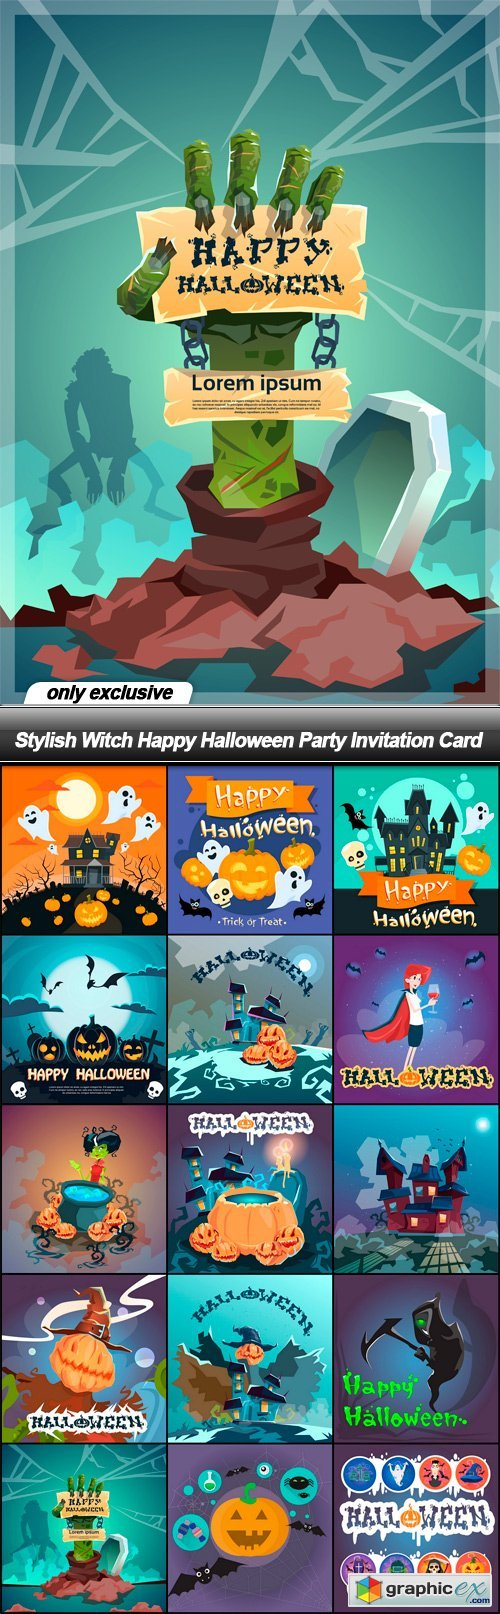 Stylish Witch Happy Halloween Party Invitation Card - 45 EPS